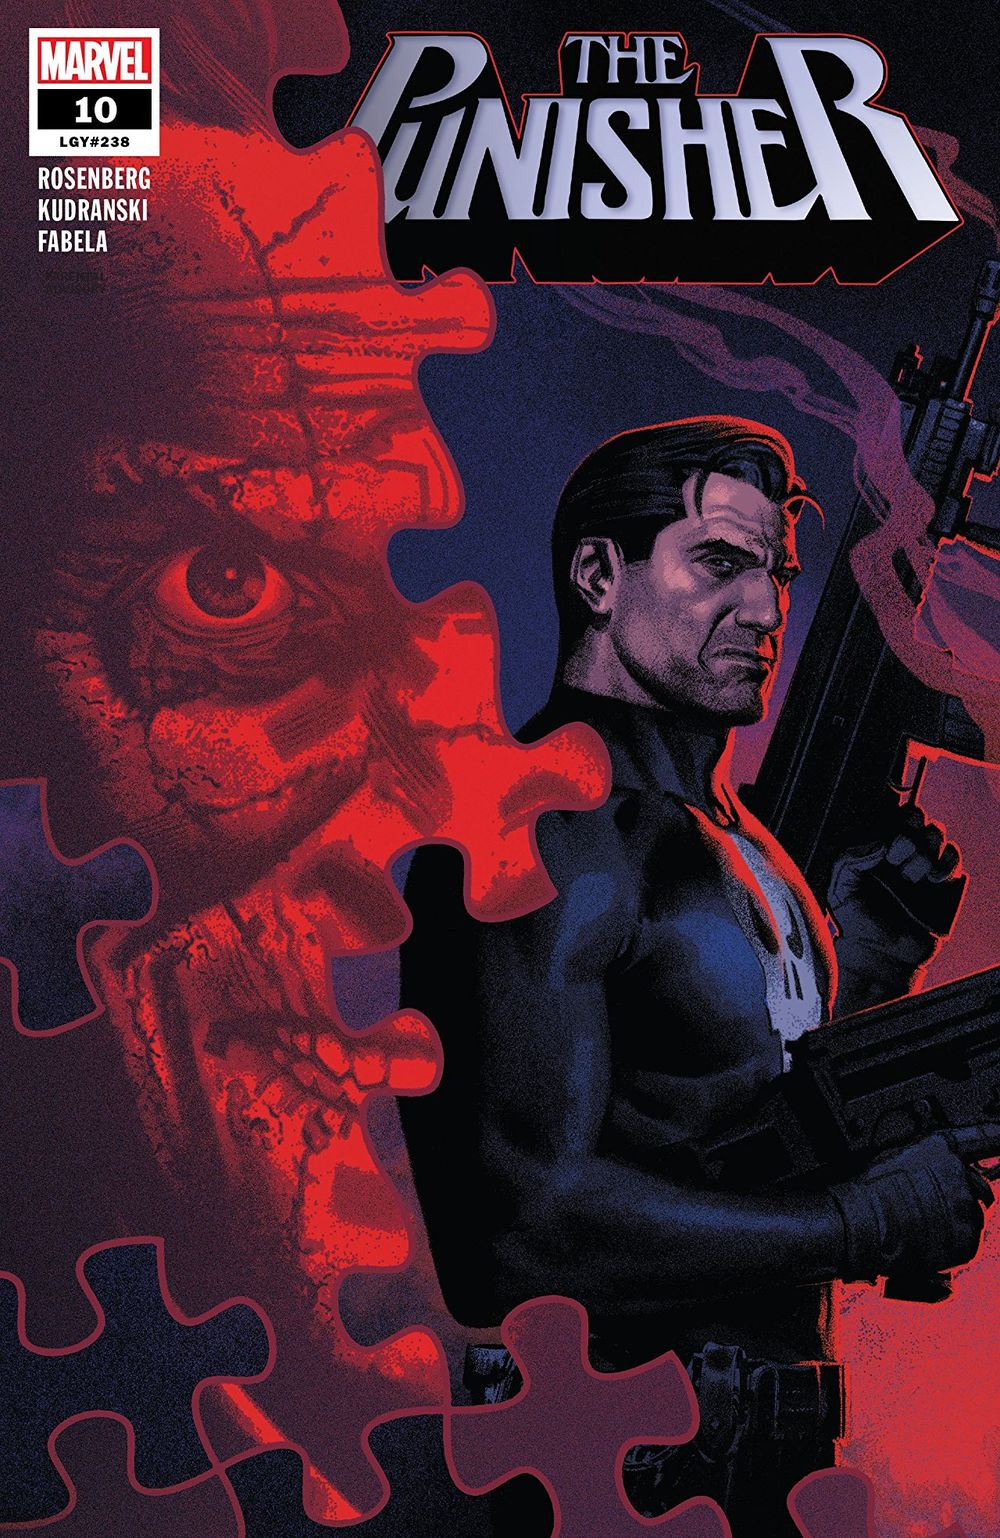 Comic Book Pull for April 3rd, 2019 THE PUNISHER #10